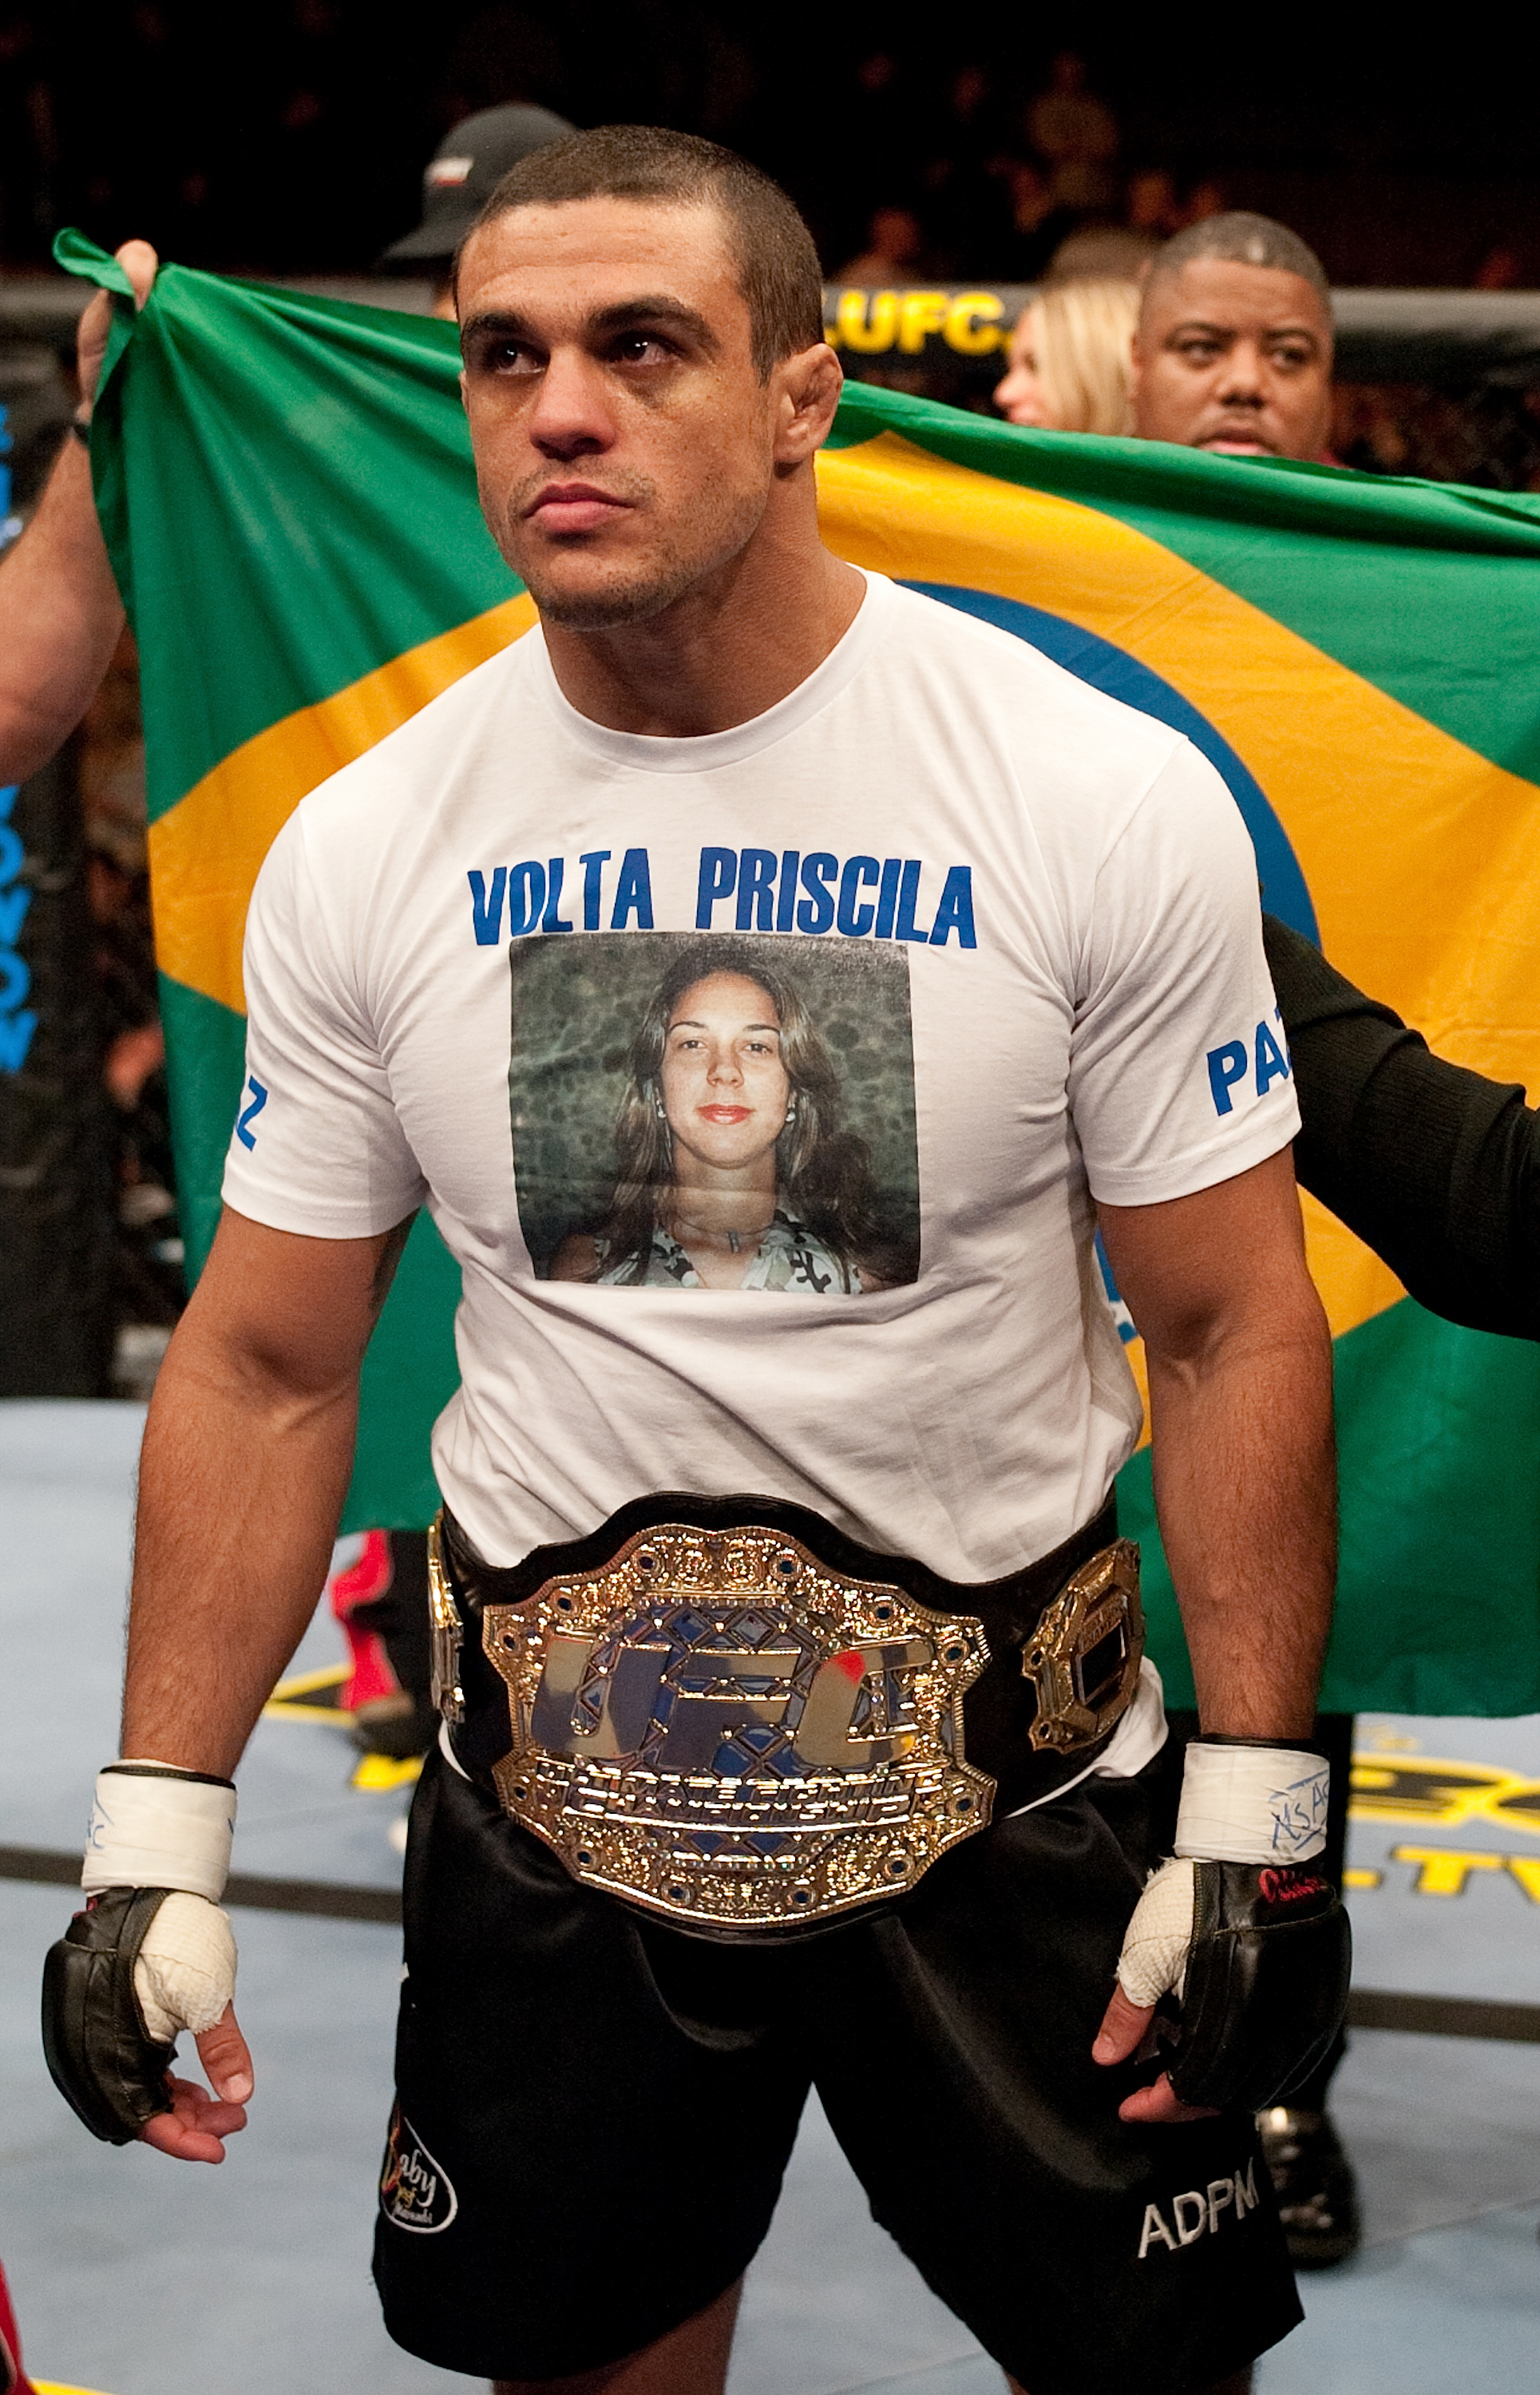 Ufc Seeking Latina Ring Card Girl: Vitor Belfort Sister's Kidnappers